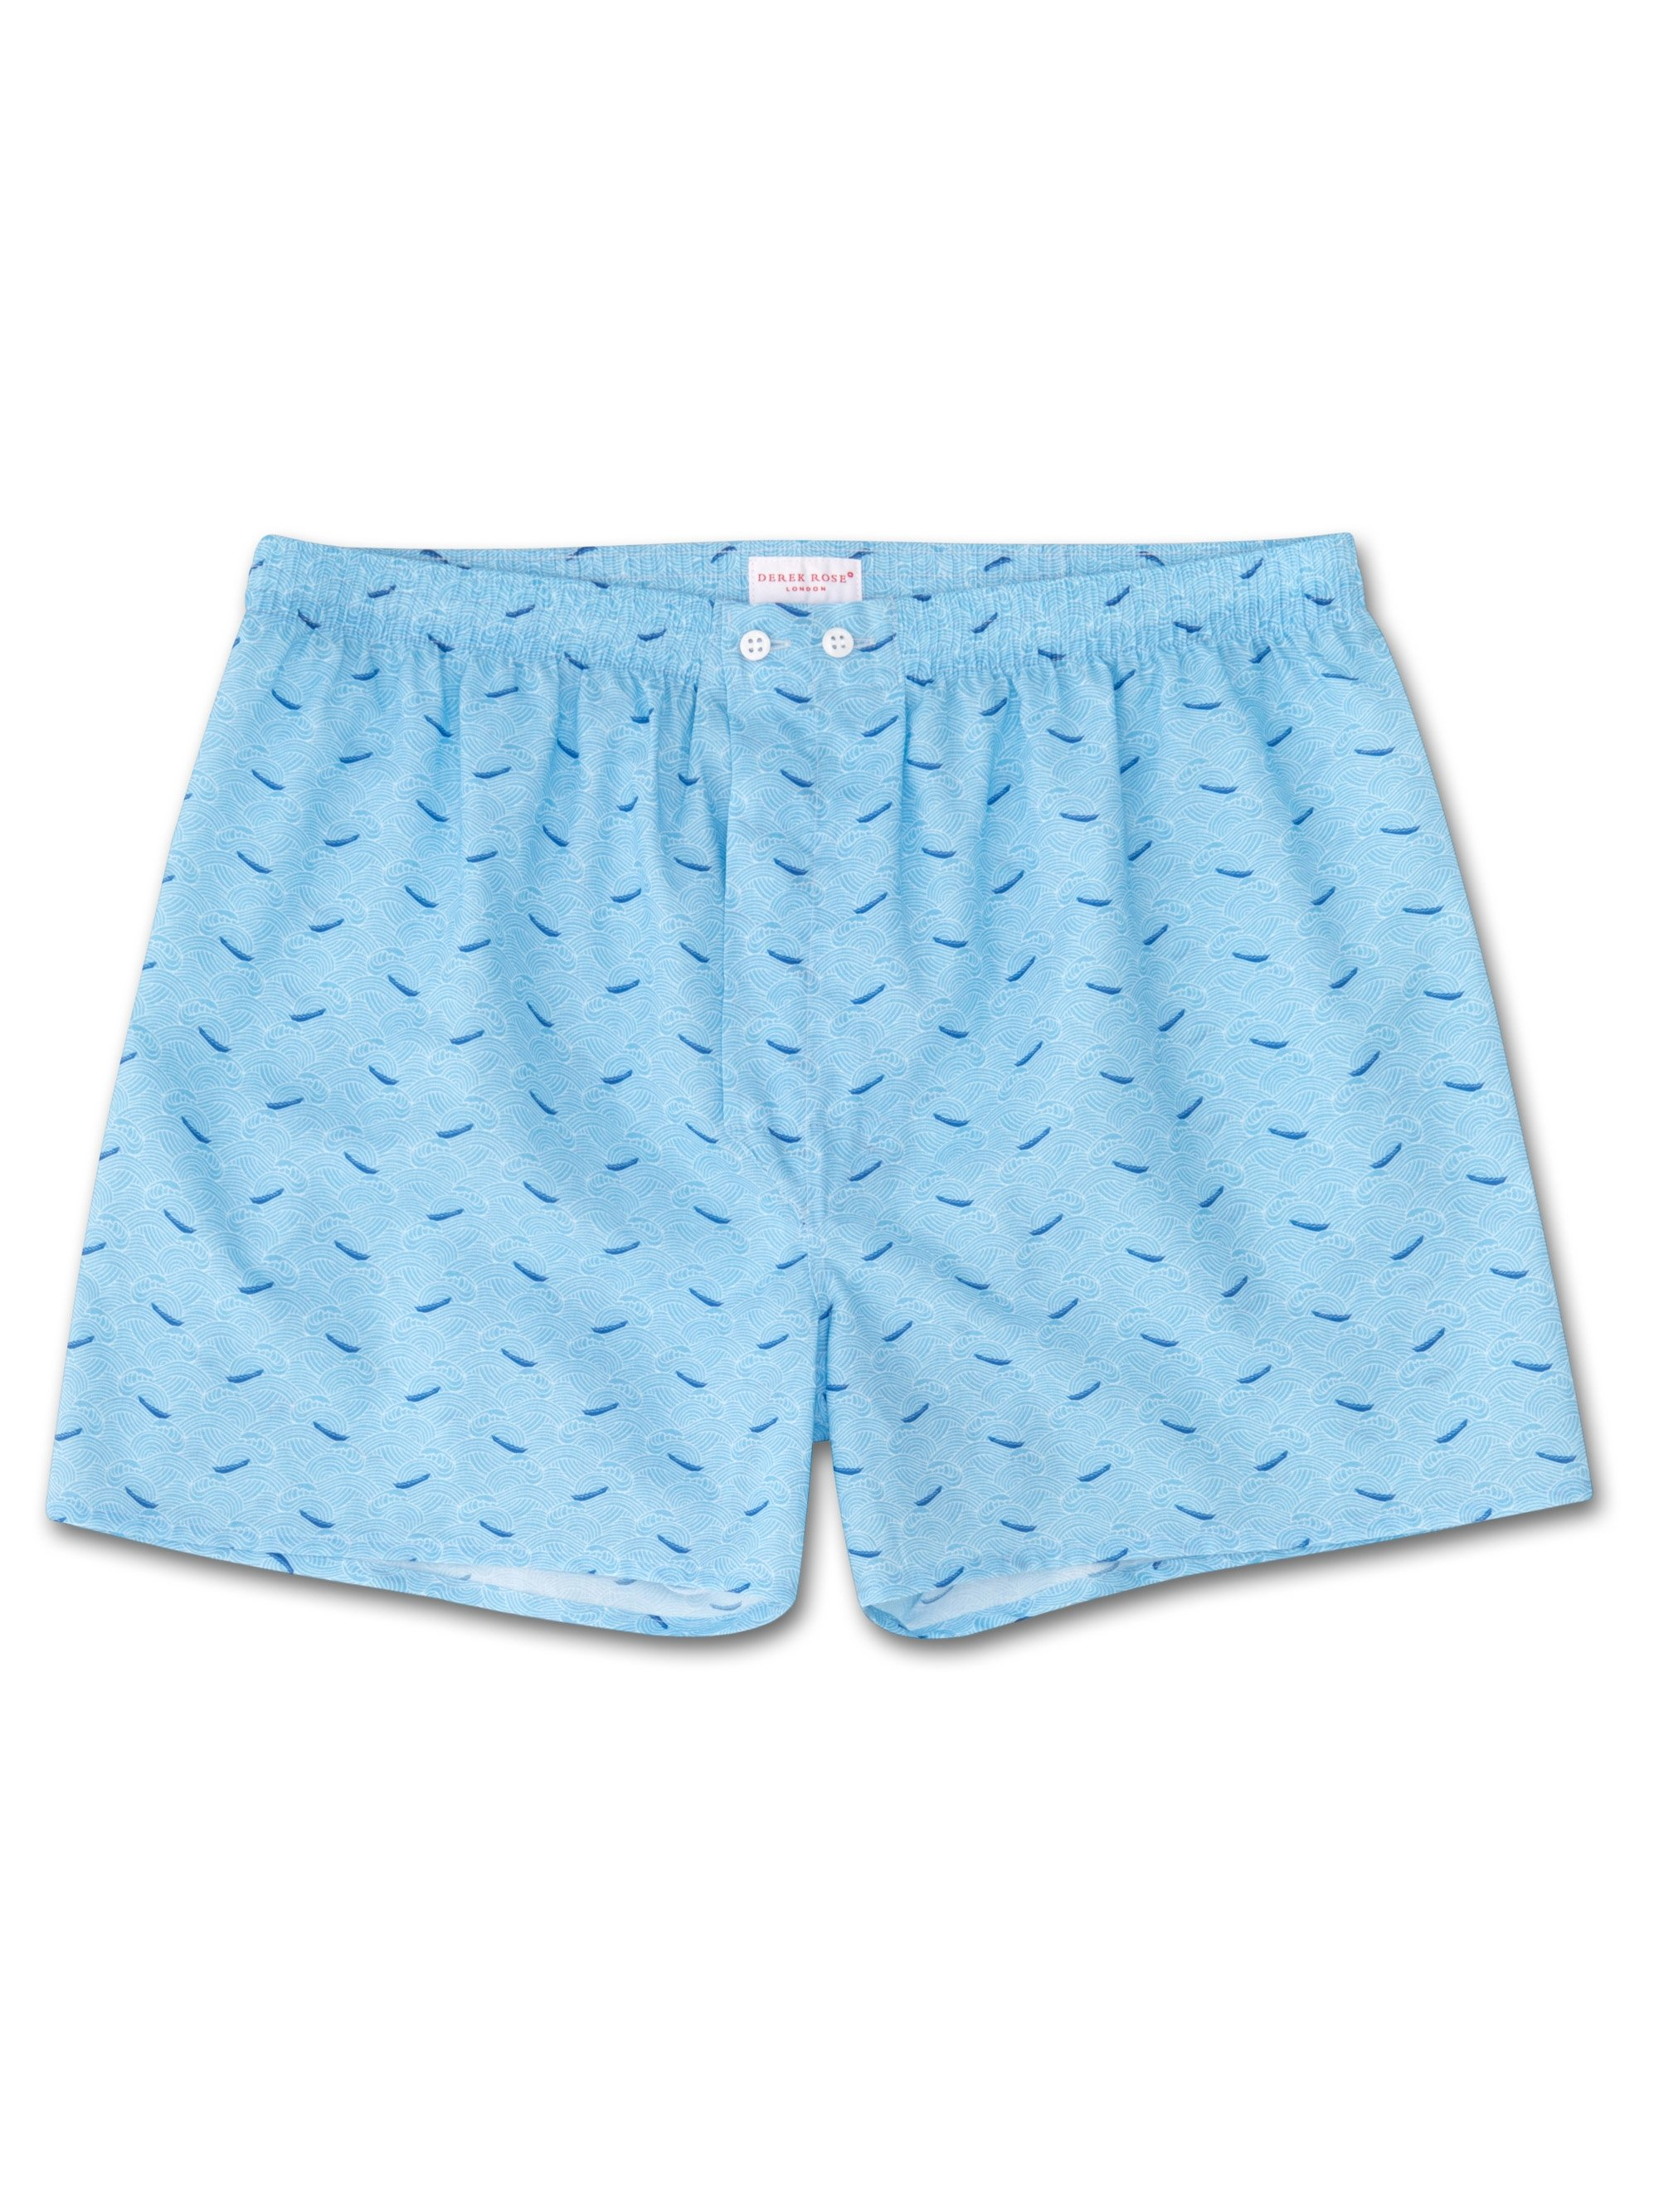 Men's Classic Fit Boxer Shorts Ledbury 12 Cotton Batiste Blue